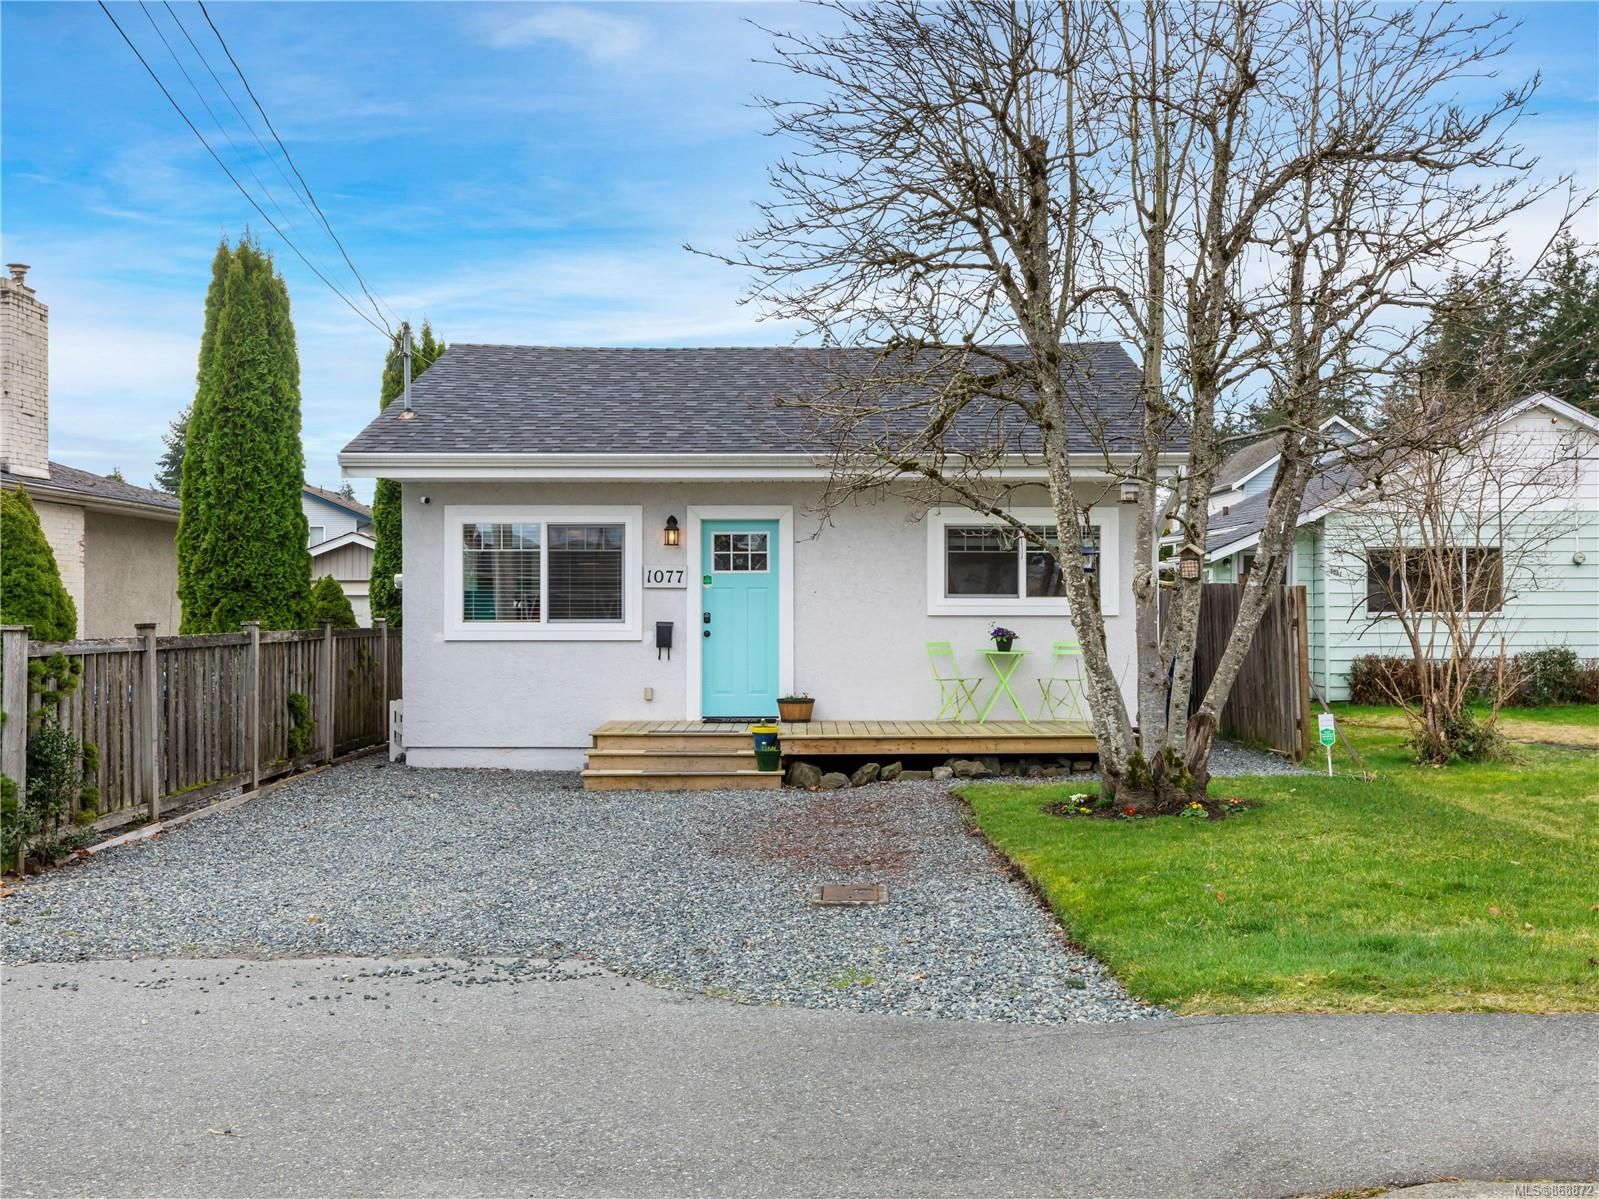 Main Photo: 1077 Nelson St in : Na Central Nanaimo House for sale (Nanaimo)  : MLS®# 868872